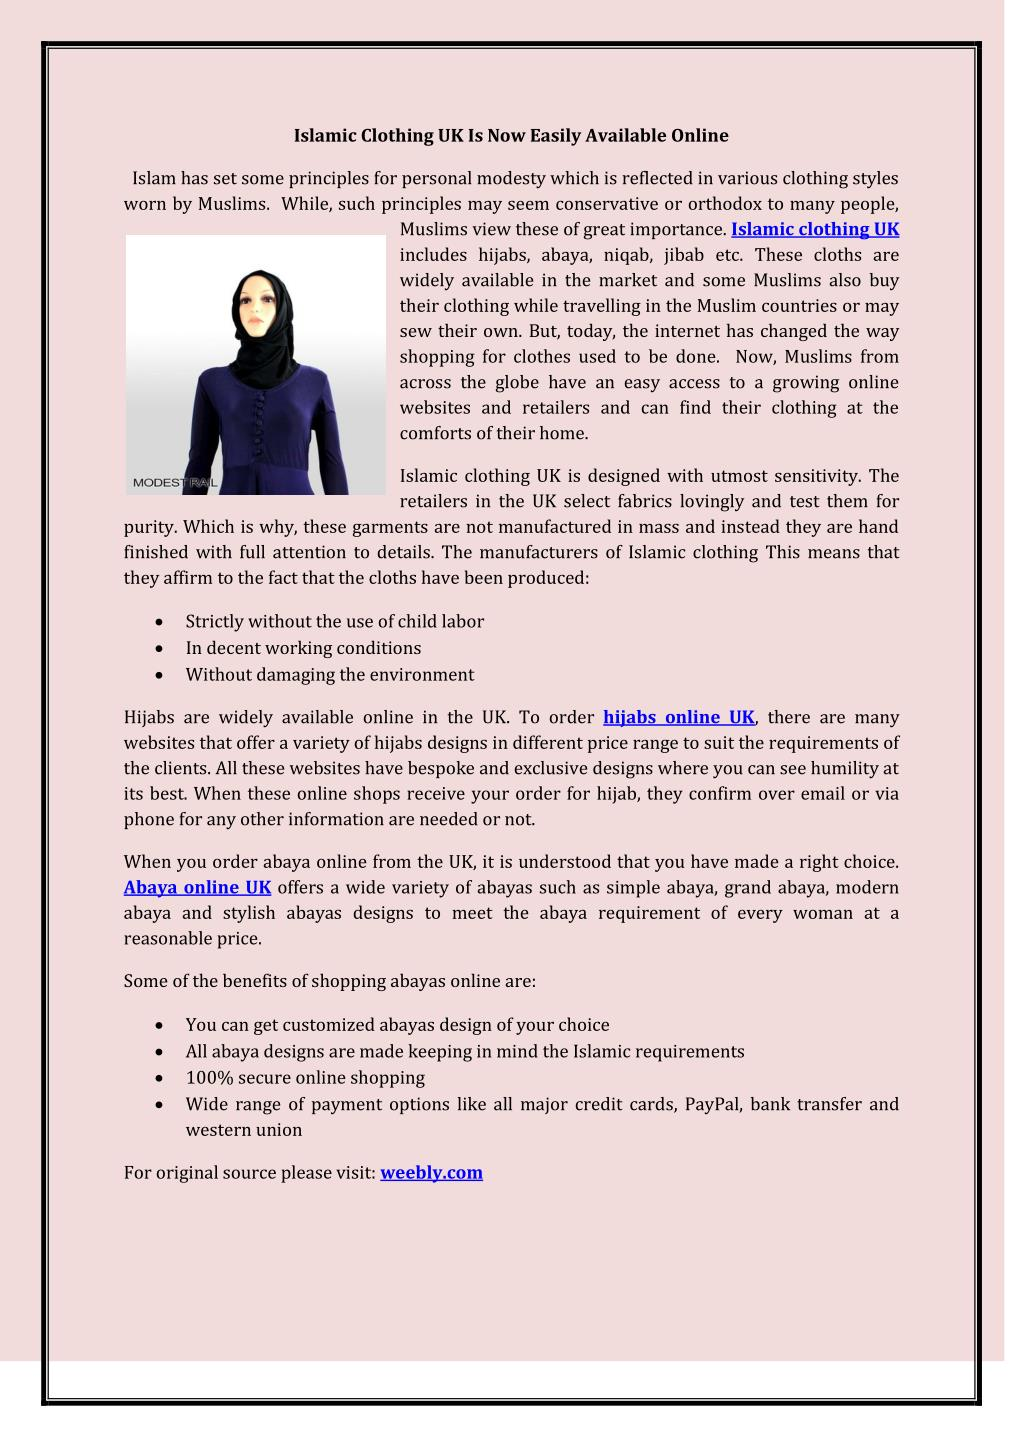 PPT - Islamic Clothing UK Is Now Easily Available Online PowerPoint